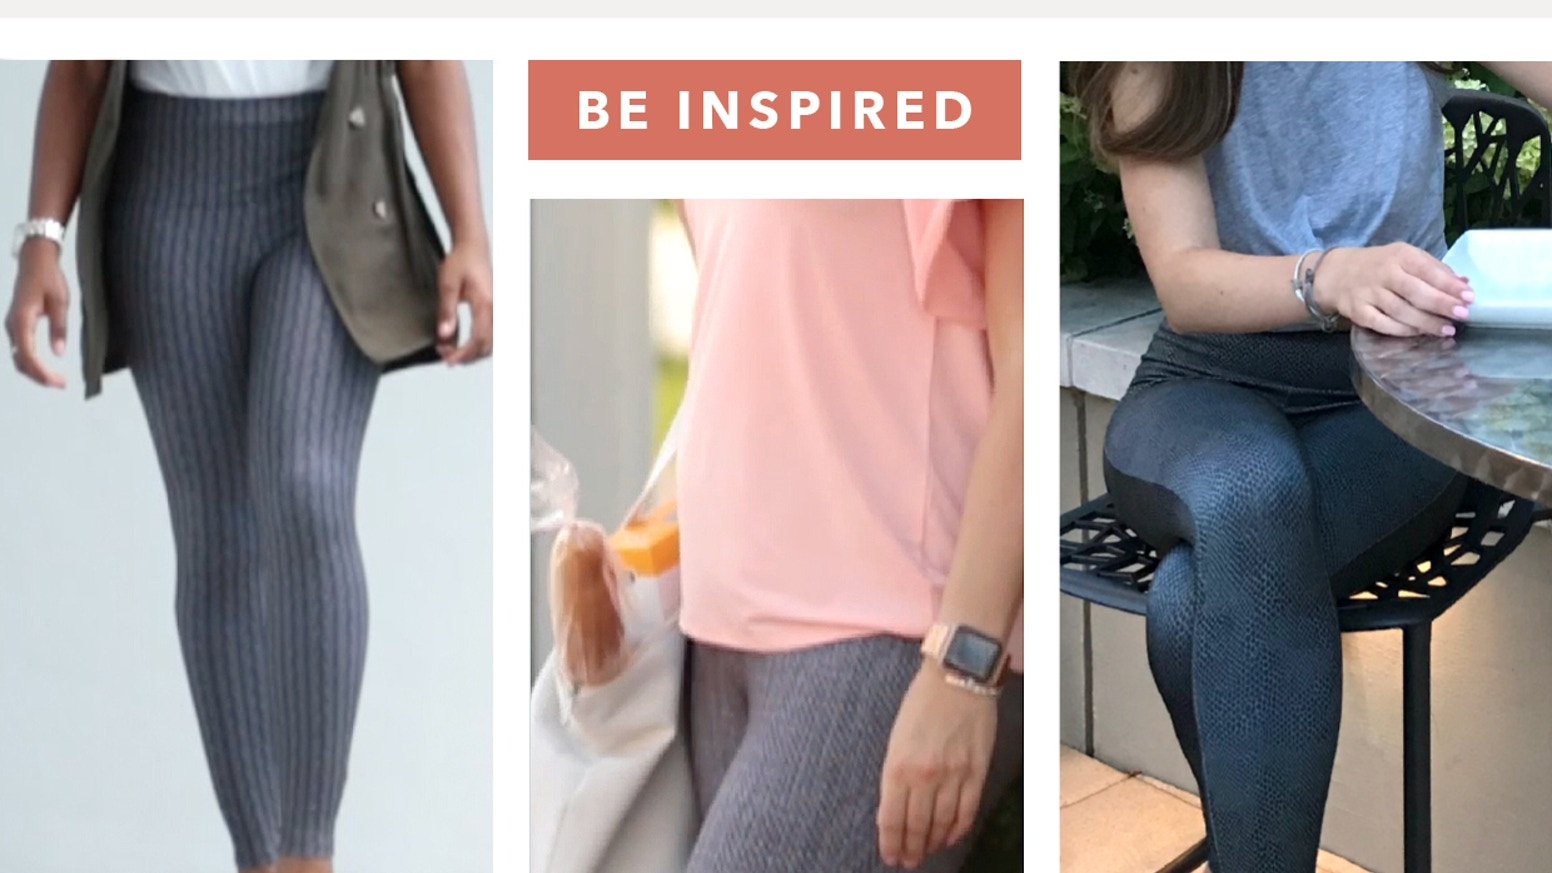 Versatile leggings with unique prints, hidden inspirational words, sustainable fabric and a commitment to support learning disabilities